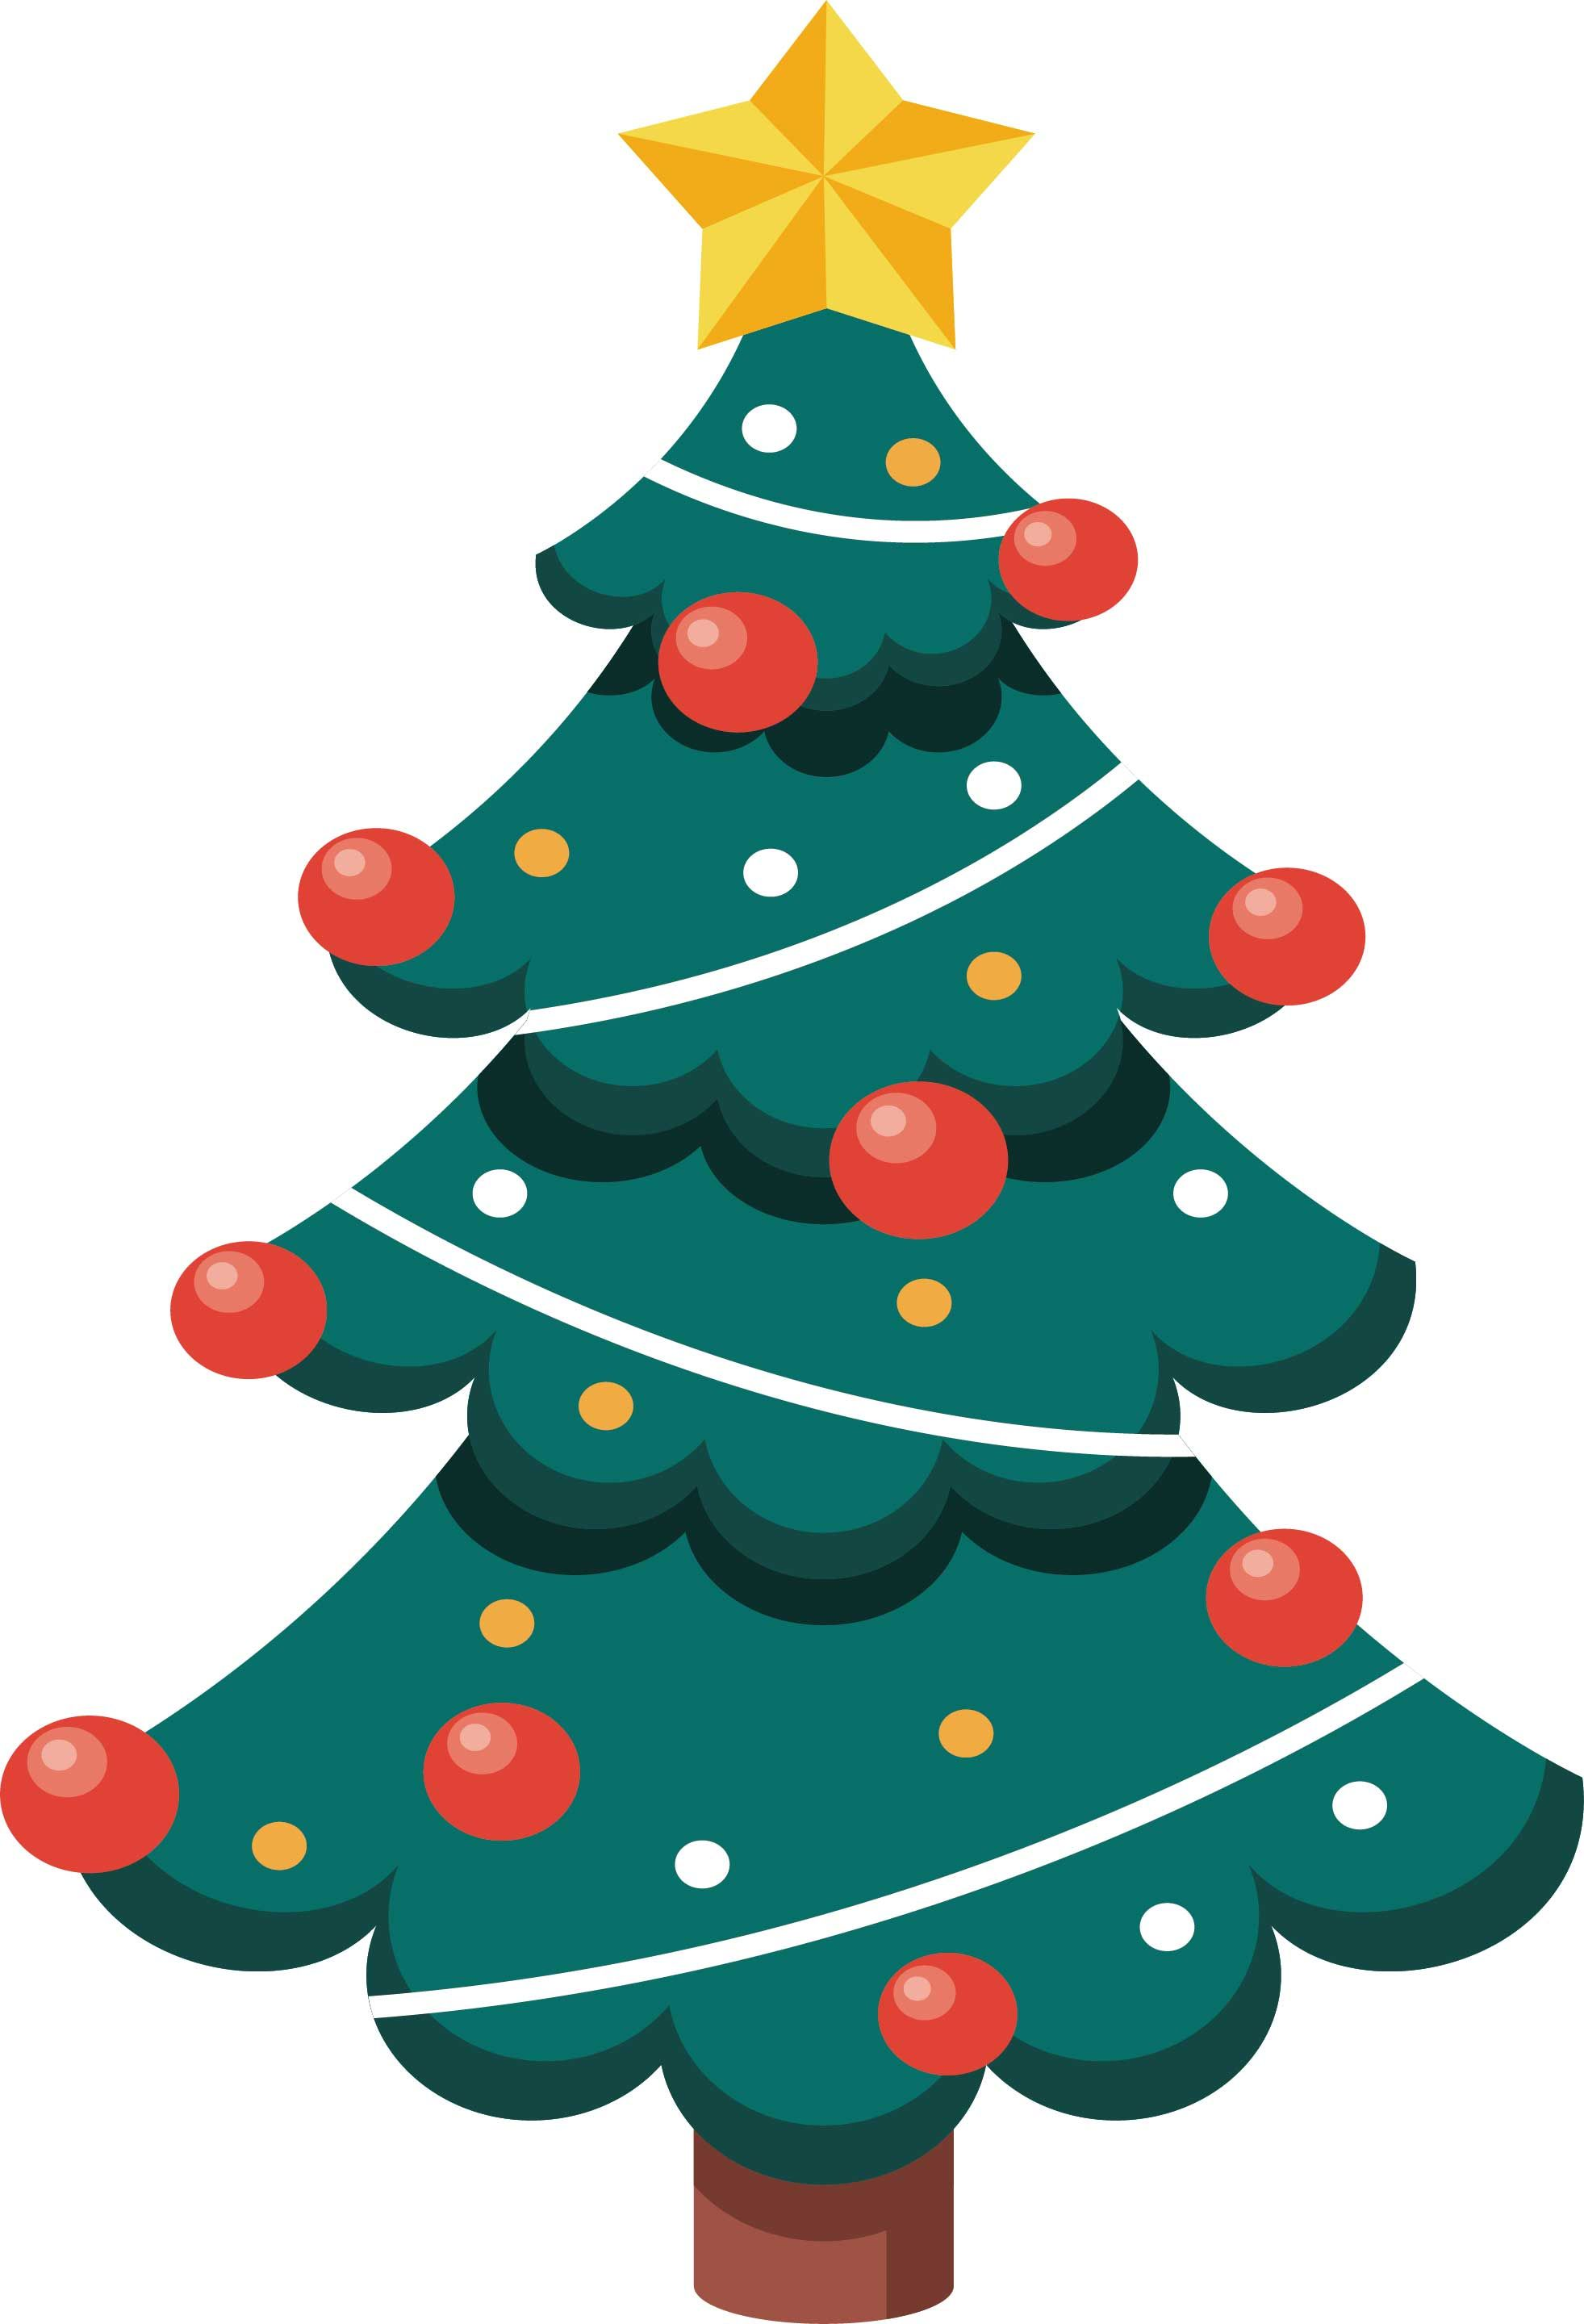 15 Charming Christmas Tree Vector Free Download (con imágenes)